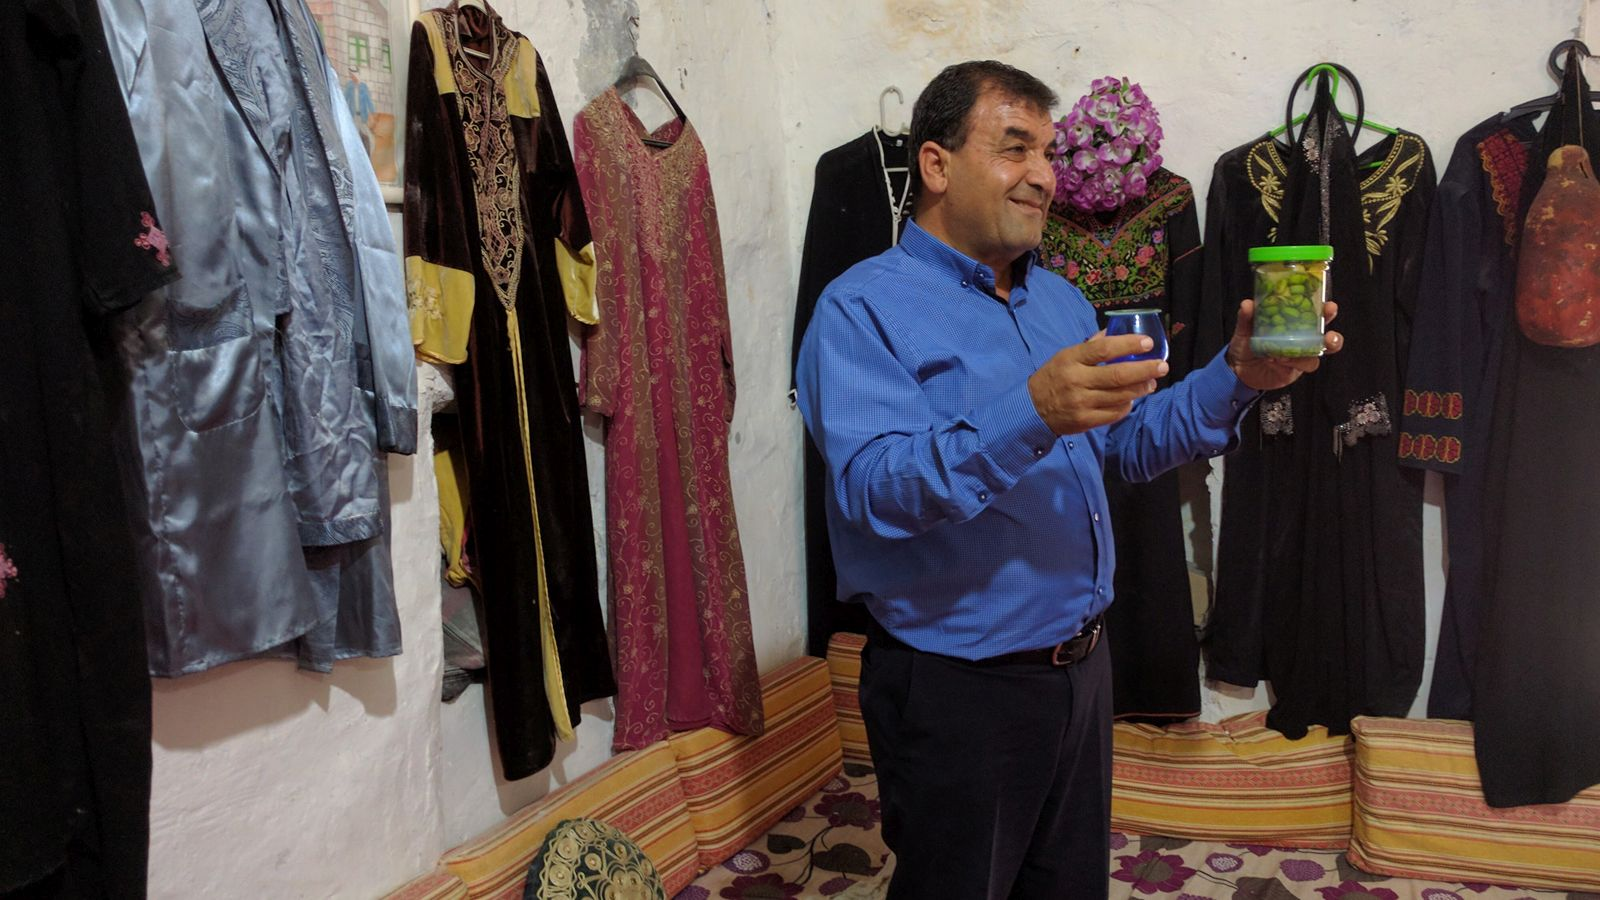 Dr. Mazen Ali talking olive oil in Deir Hanna. Photo by Viva Sarah Press